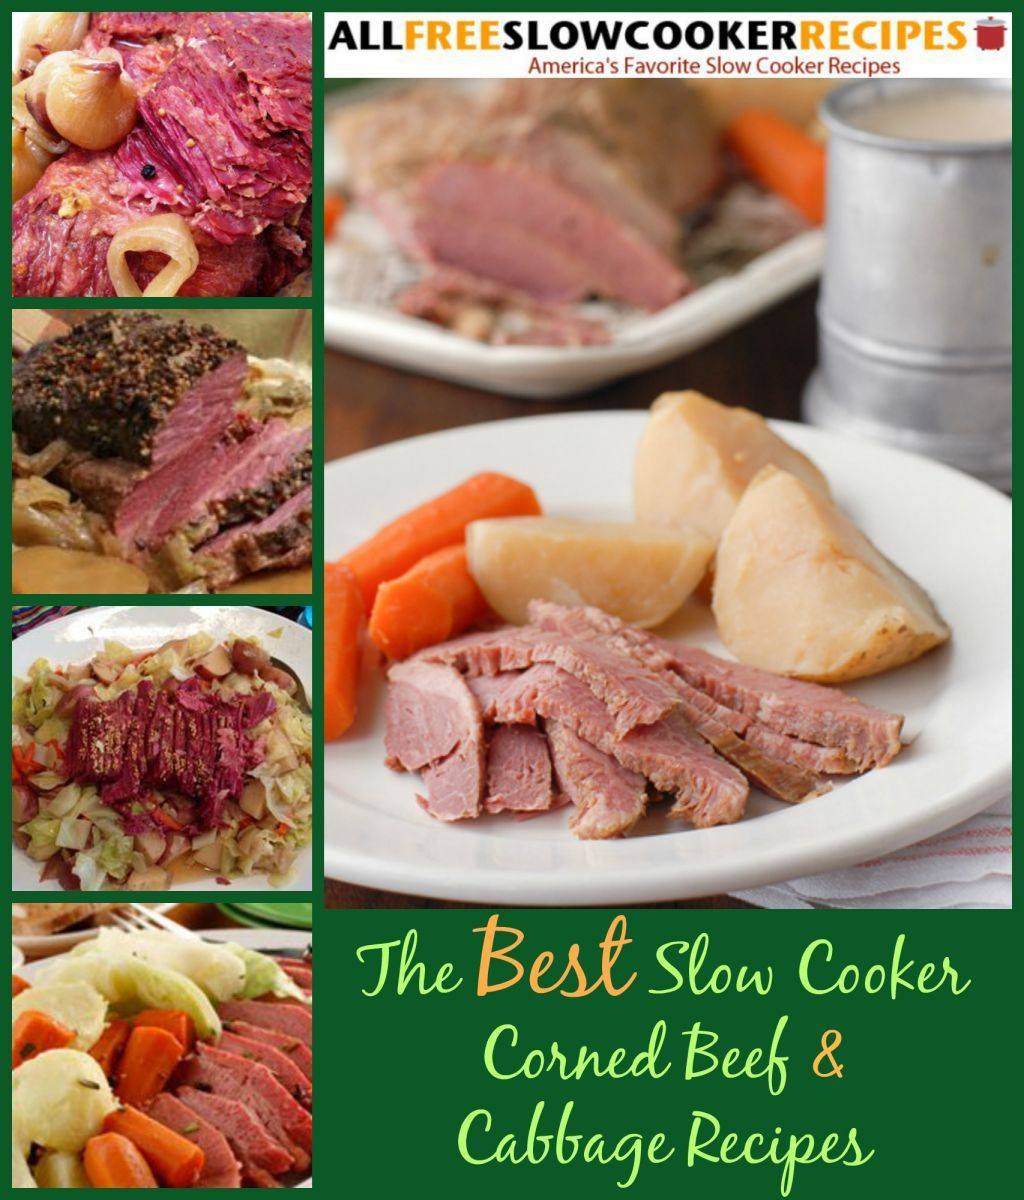 13 Slow Cooker Corned Beef And Cabbage Recipes Best Slow Cooker Recipes Slow Cooker Corned Beef Corn Beef Cabbage Ground Beef Crockpot Recipes